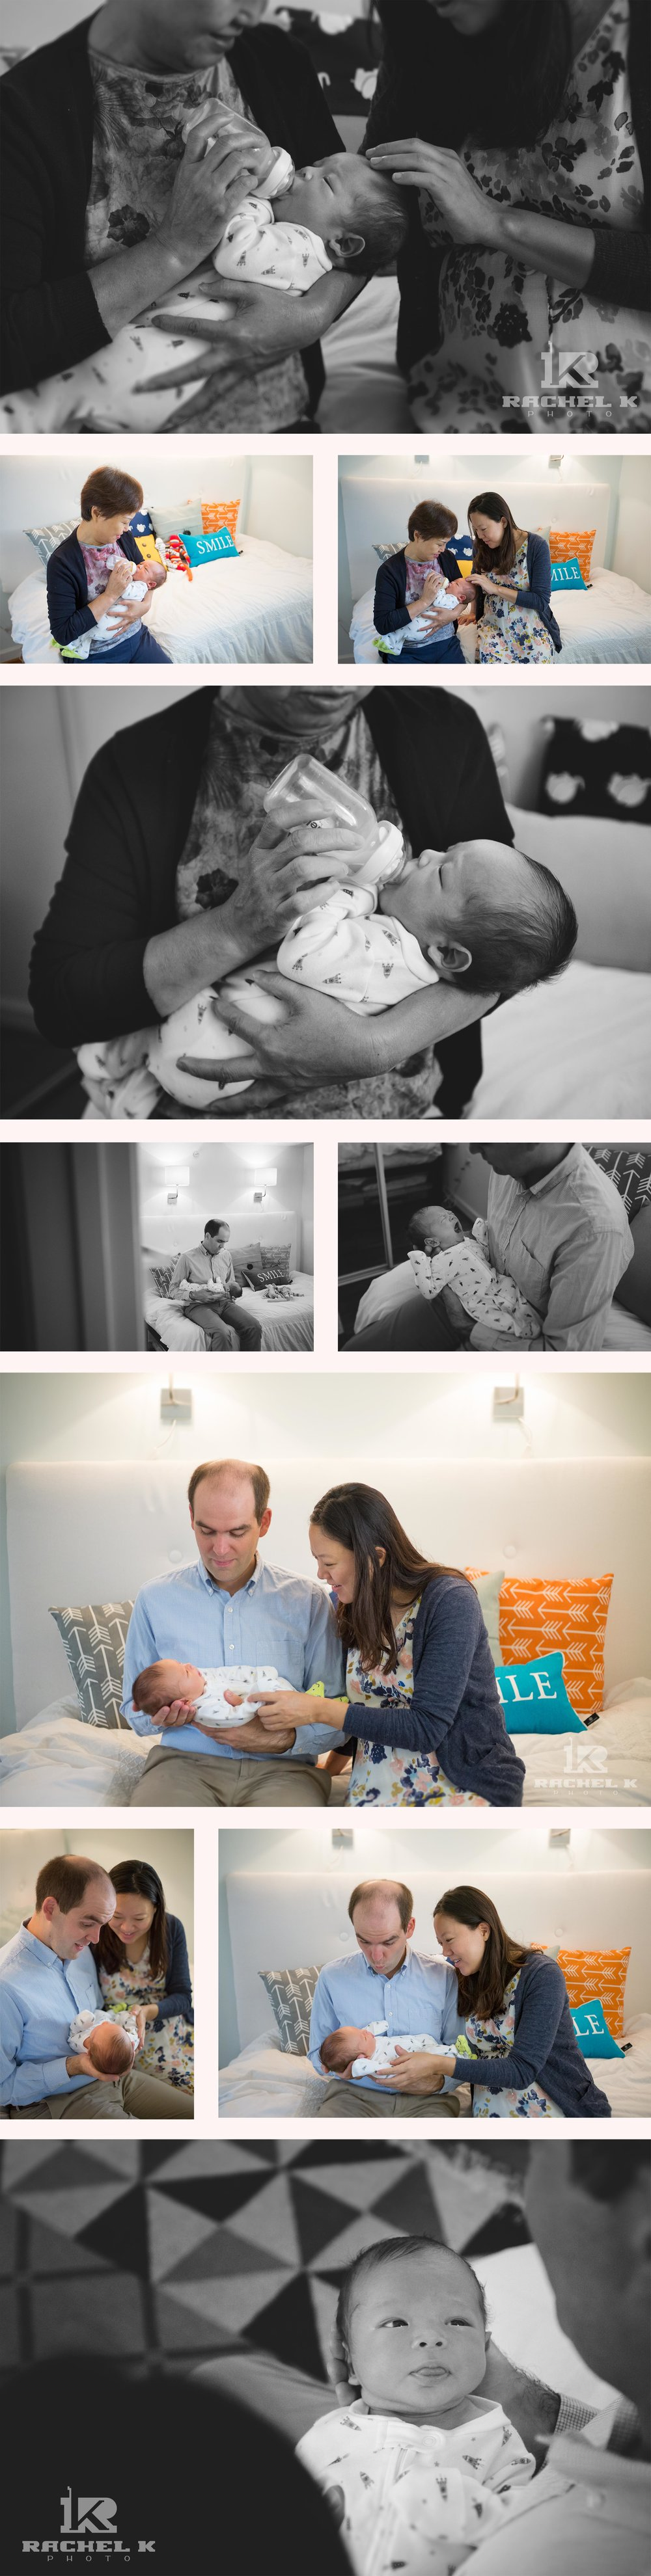 Rachel K Photo newborn lifestyle session in Arlington Virginia